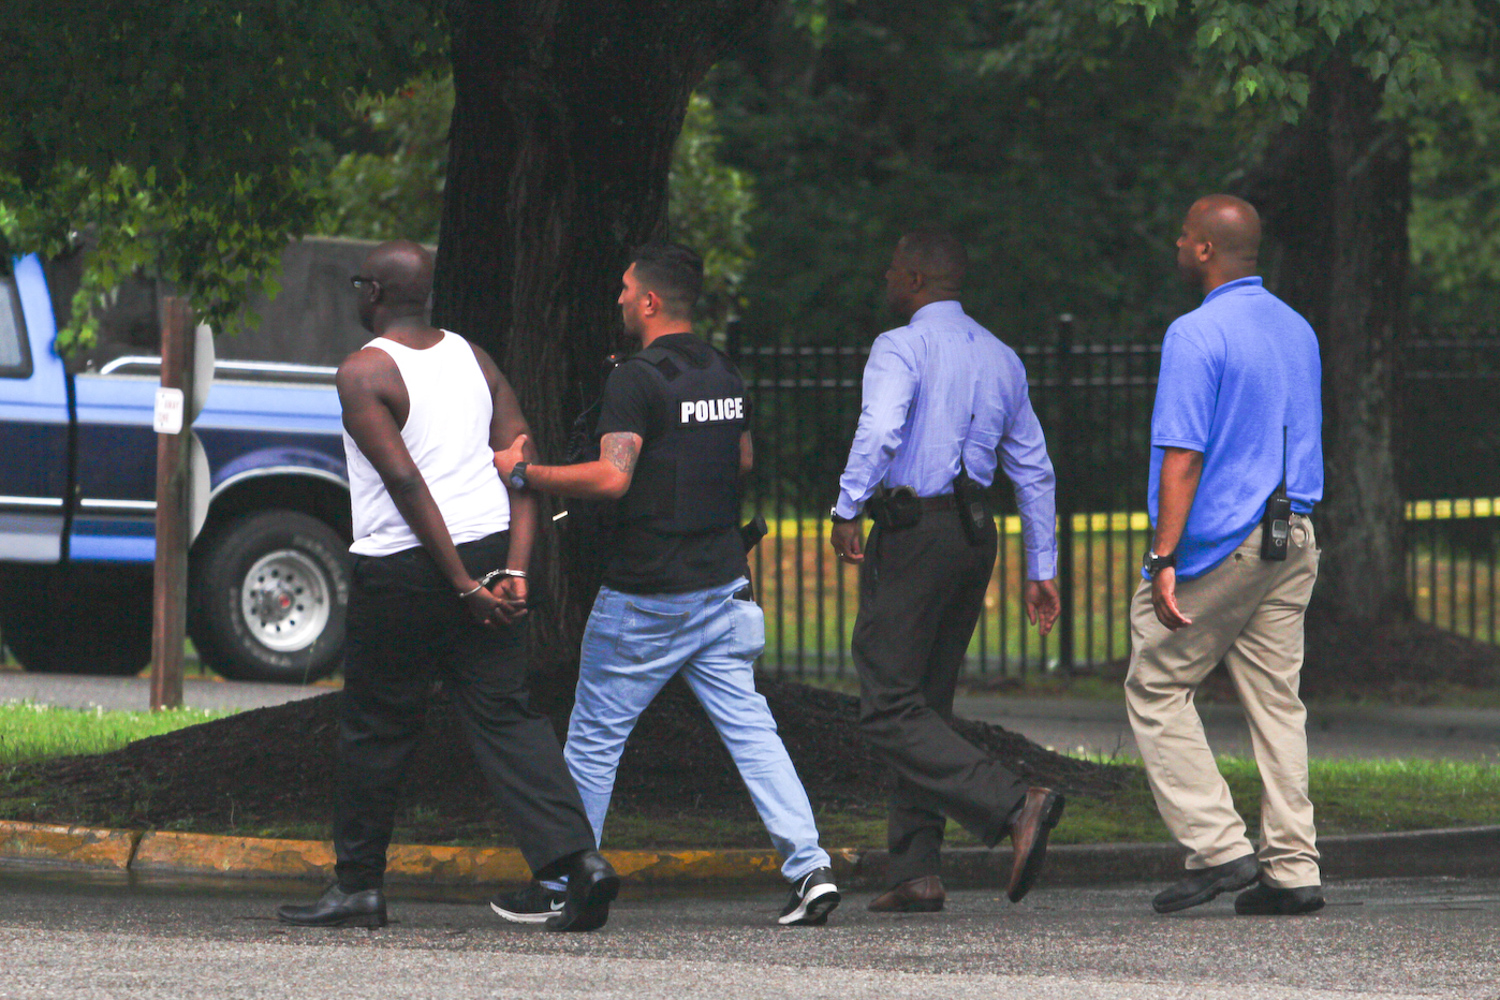 Petersburg police lead away a man arrested after a brief car and foot pursuit in the Ivy Gates Apartments near S. Sycamore Street in Petersburg on Monday, June 5, 2017. The man is suspected of robbing the SunTrust Bank on W. Washington Street earlier in the day. [Scott P. Yates/progress-index.com]